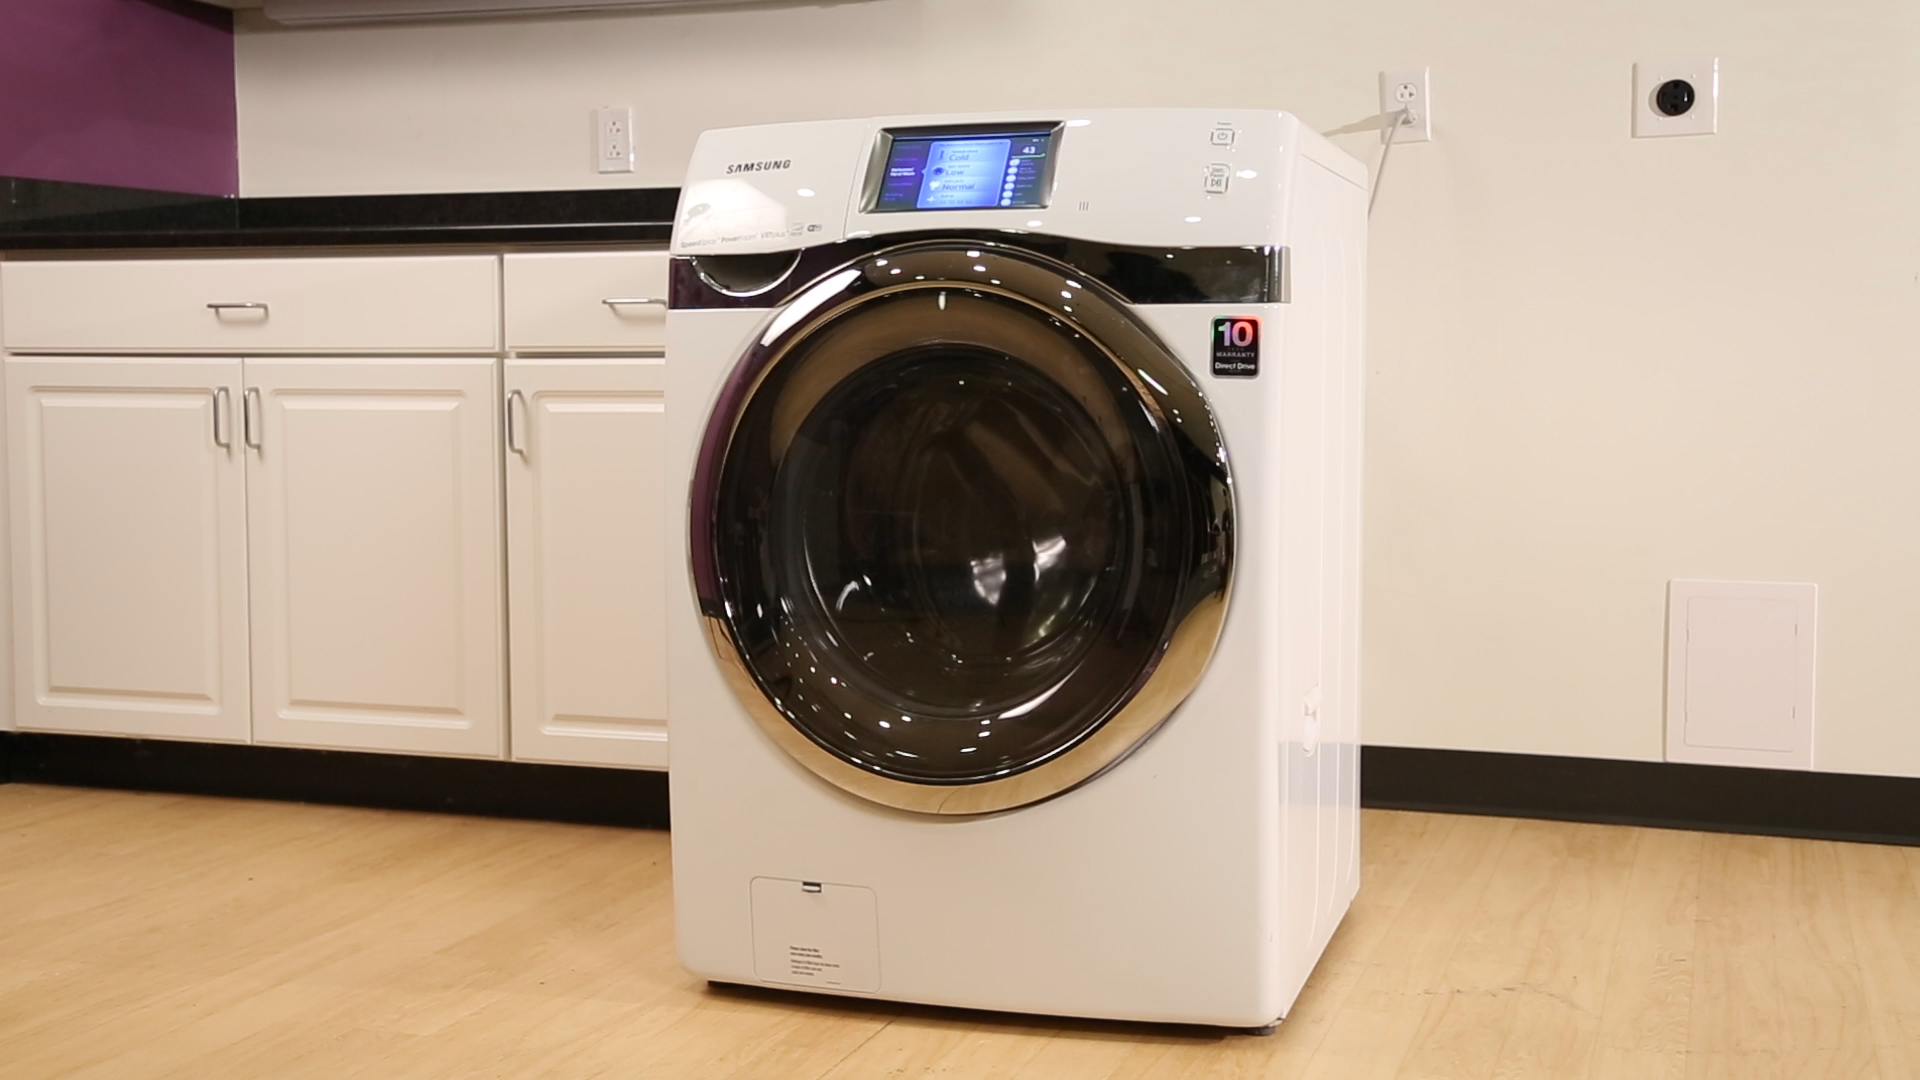 Video: Samsung's smart washer is a pretty quick study